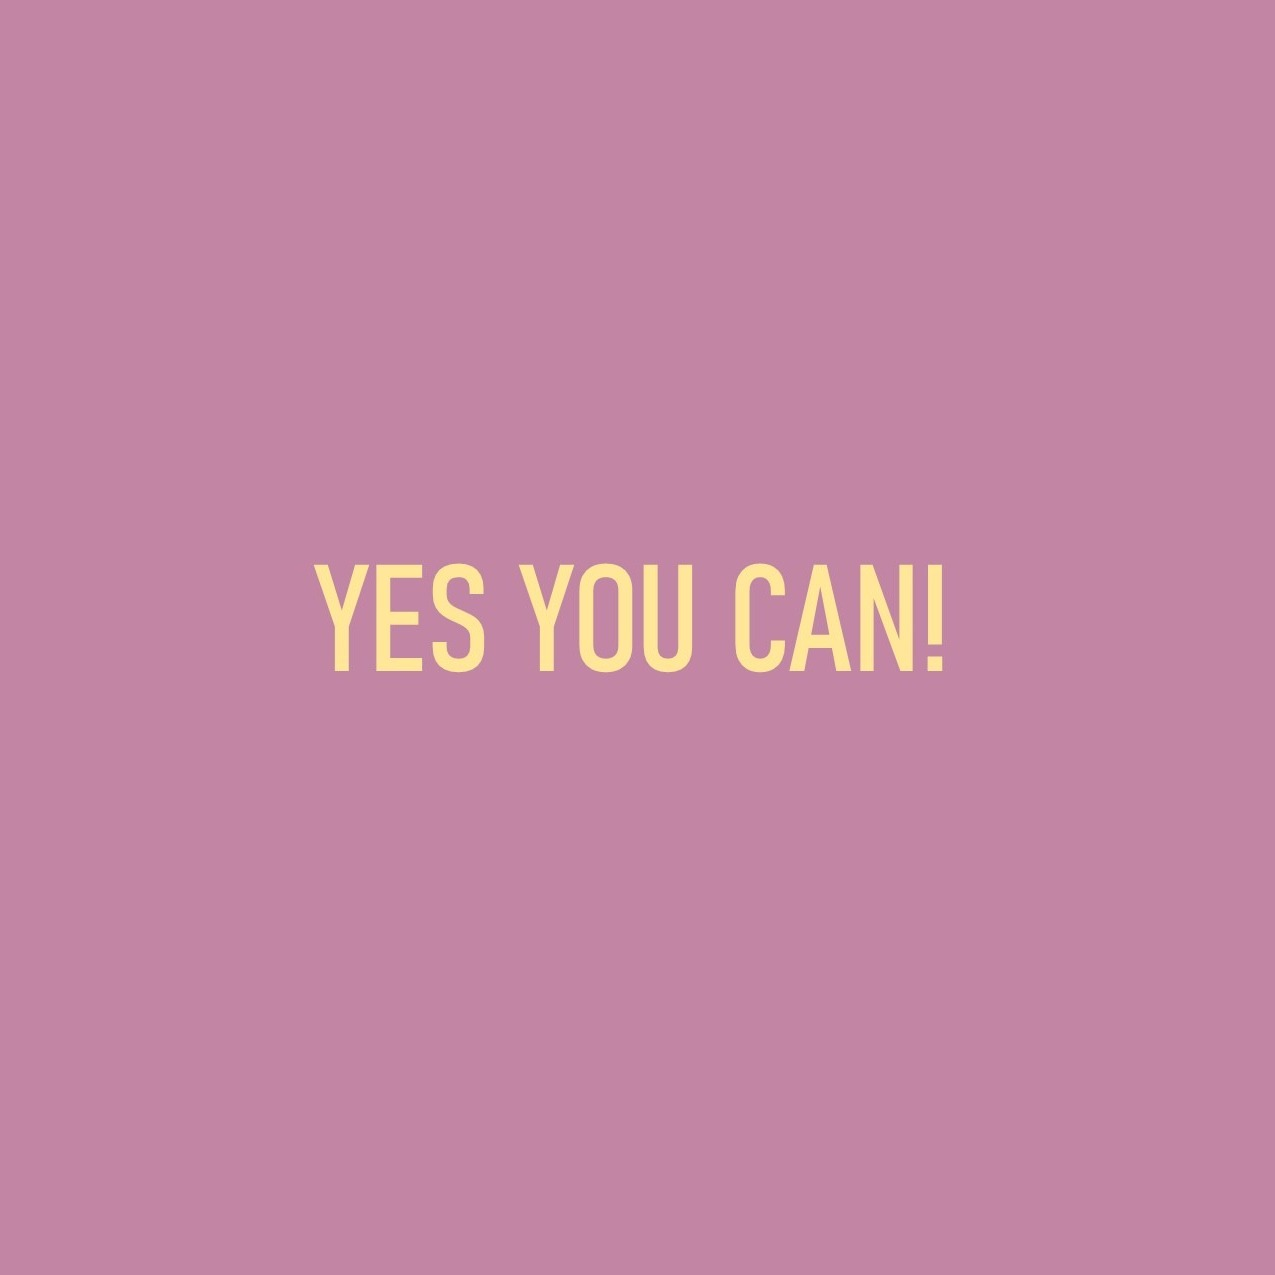 Episode 37 - Yes You Can